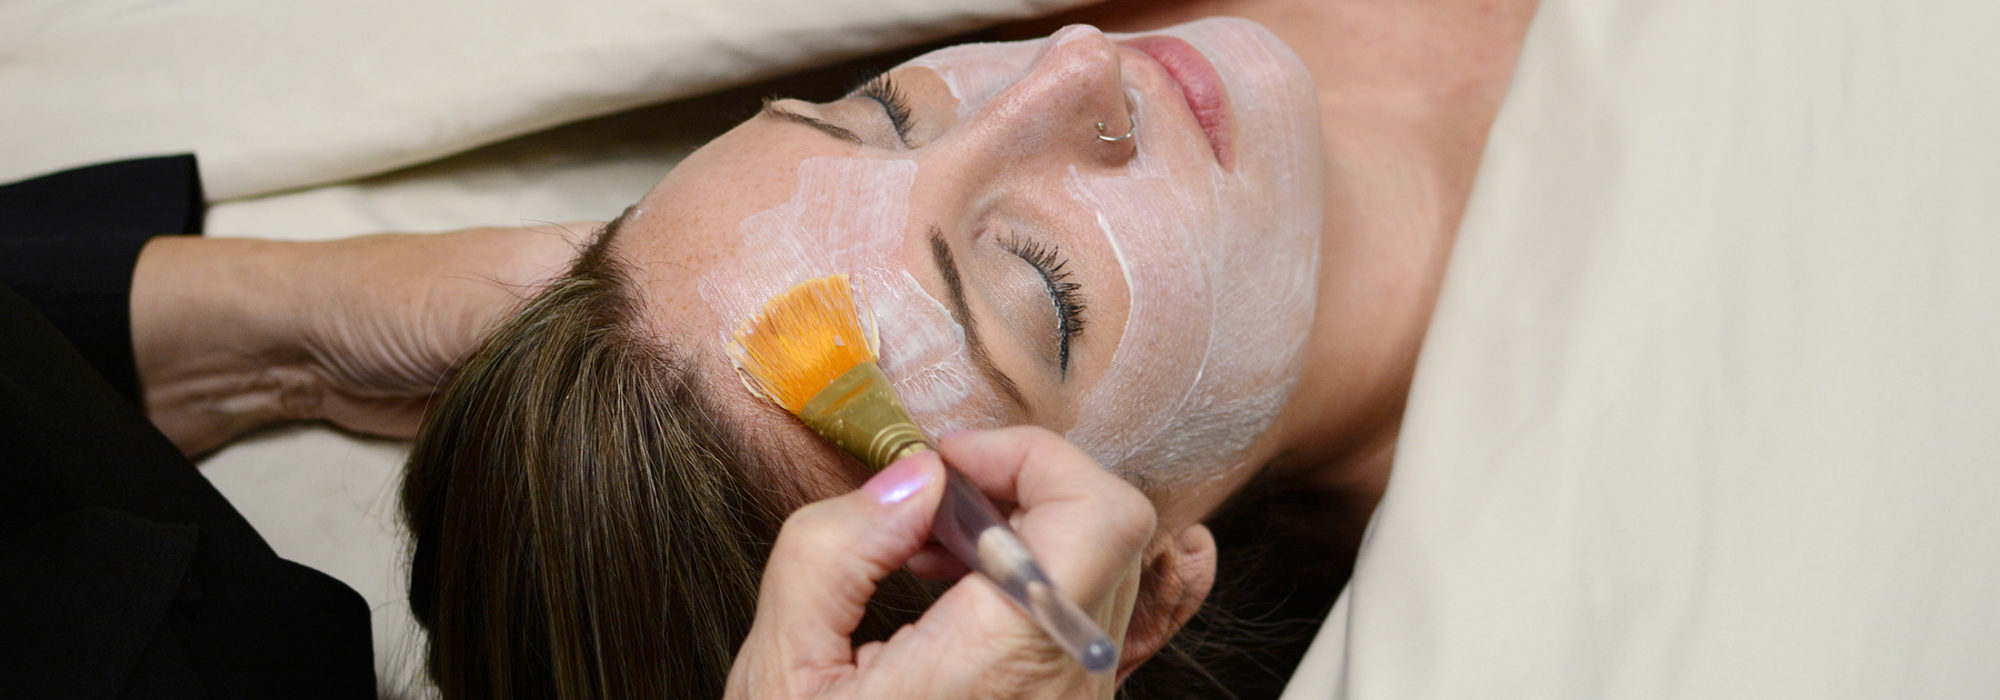 Afterglow Providence custom facial treatment.